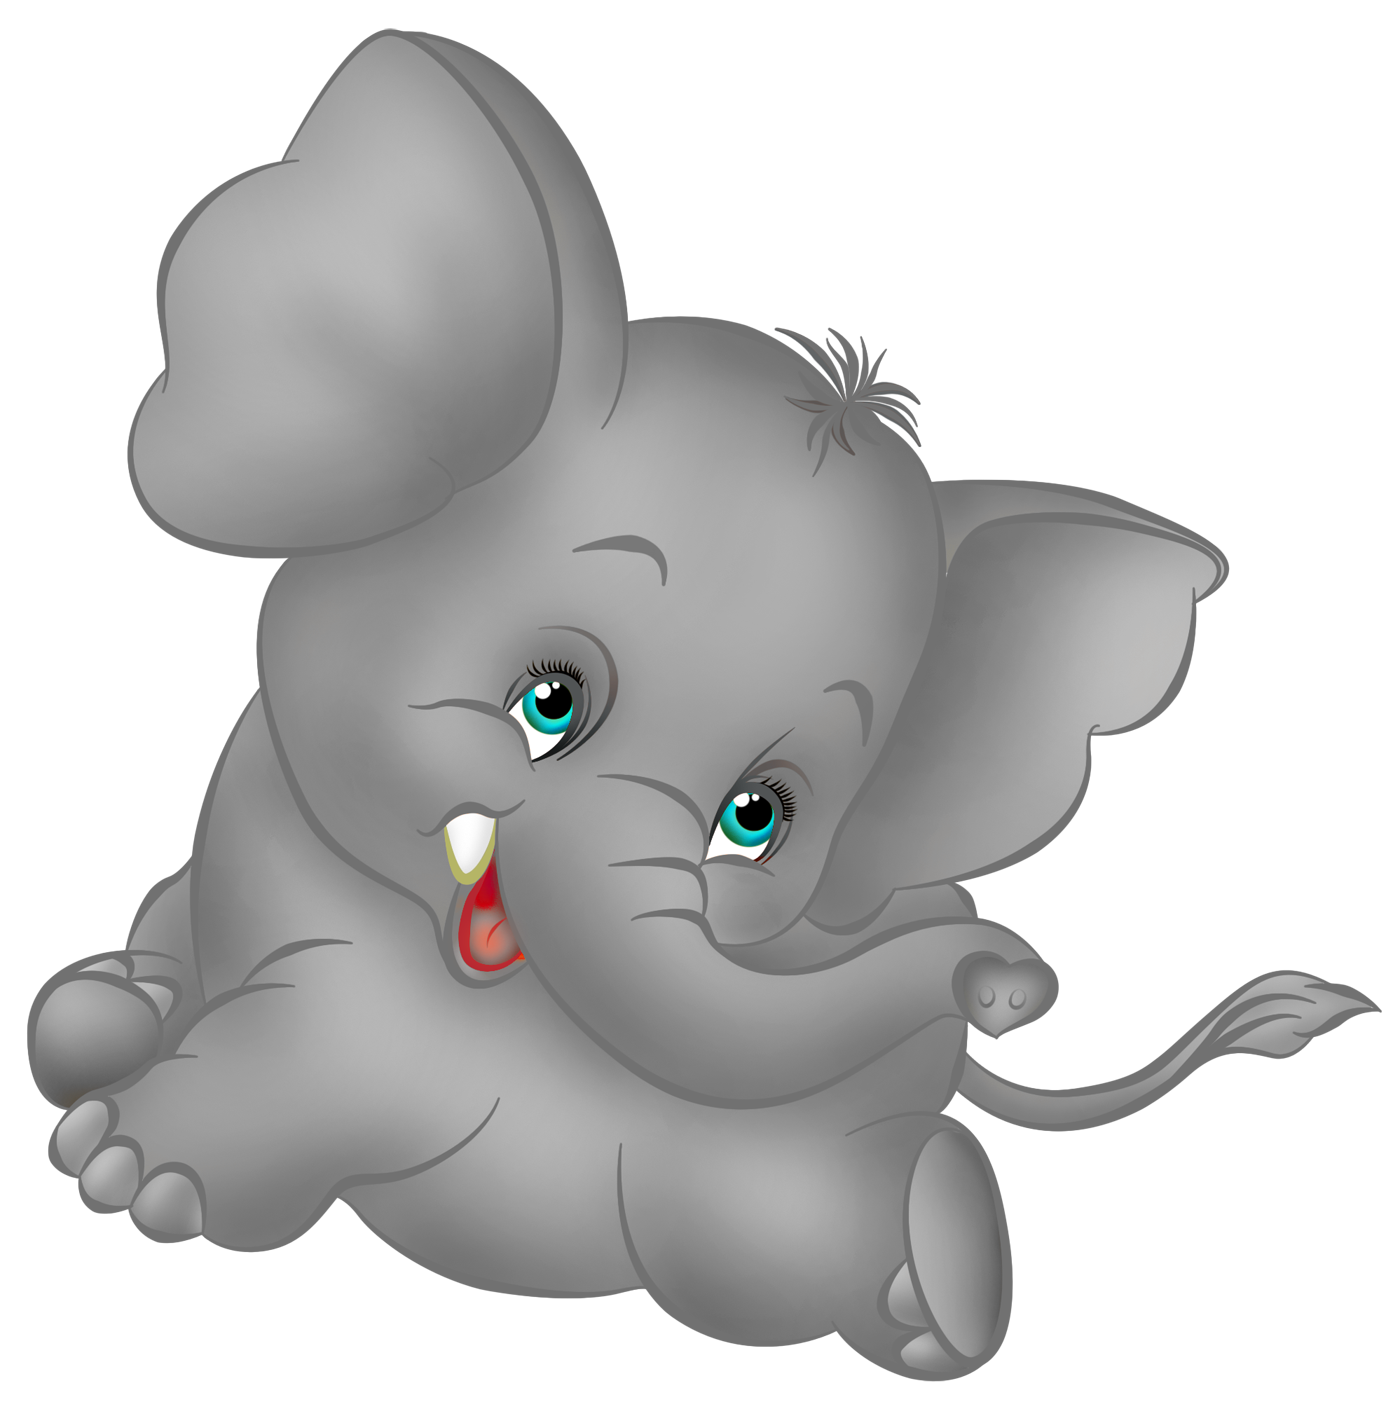 Grey Elephant Cartoon Free Clipart | Elephants Roll Tide Big All And ...